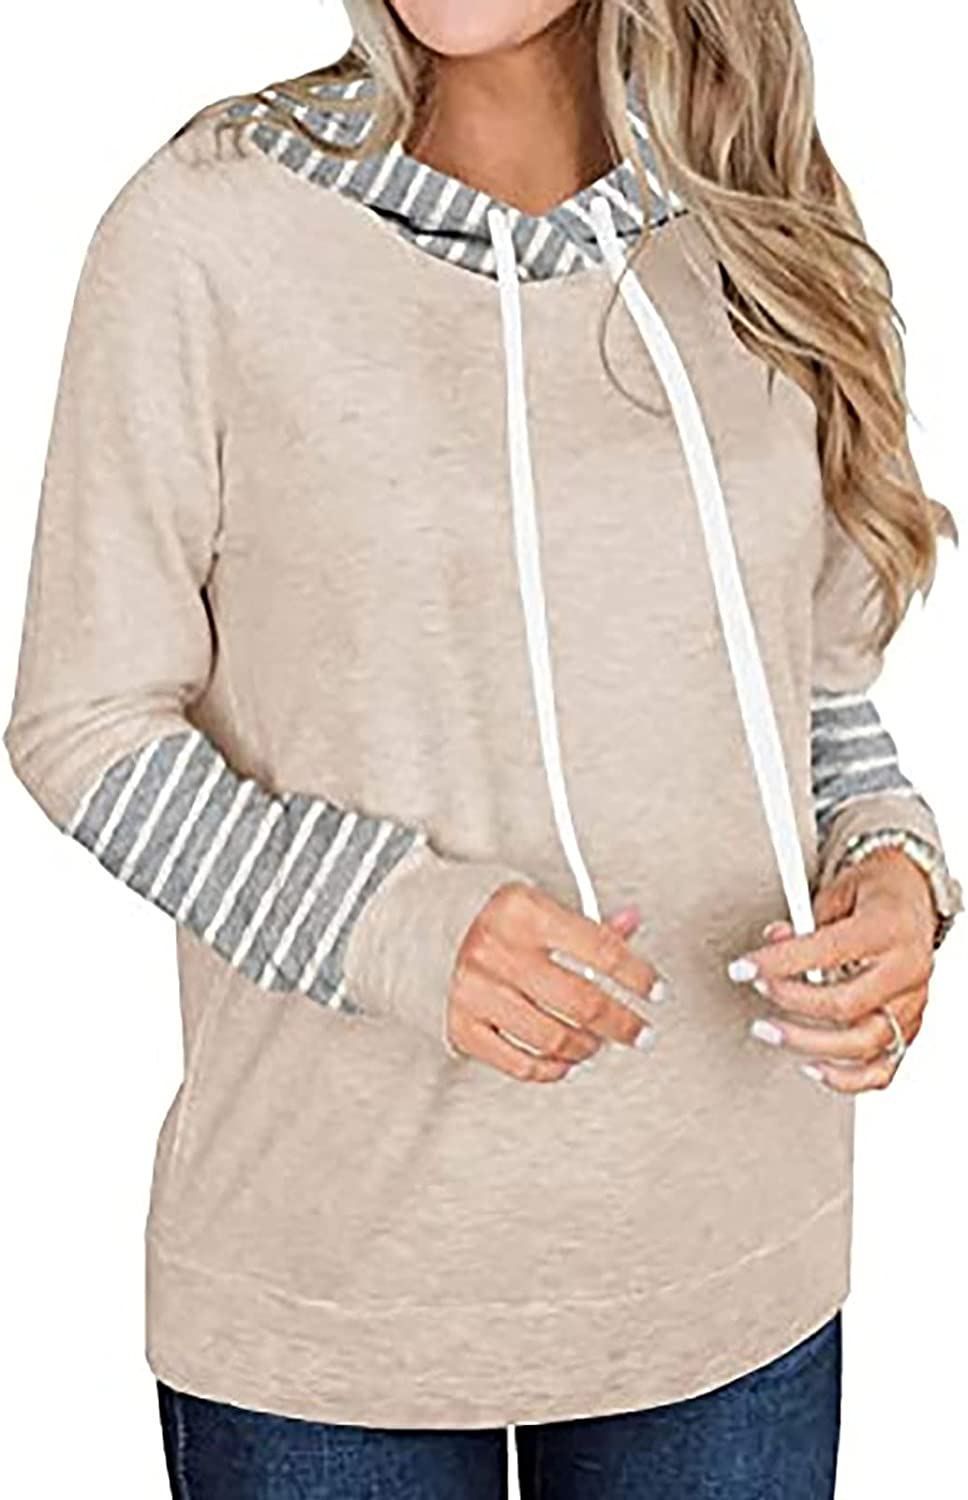 Striped Shirt Women Long Sleeve Blouse College Hoodies Color Block Tops Basic Casual Tunic